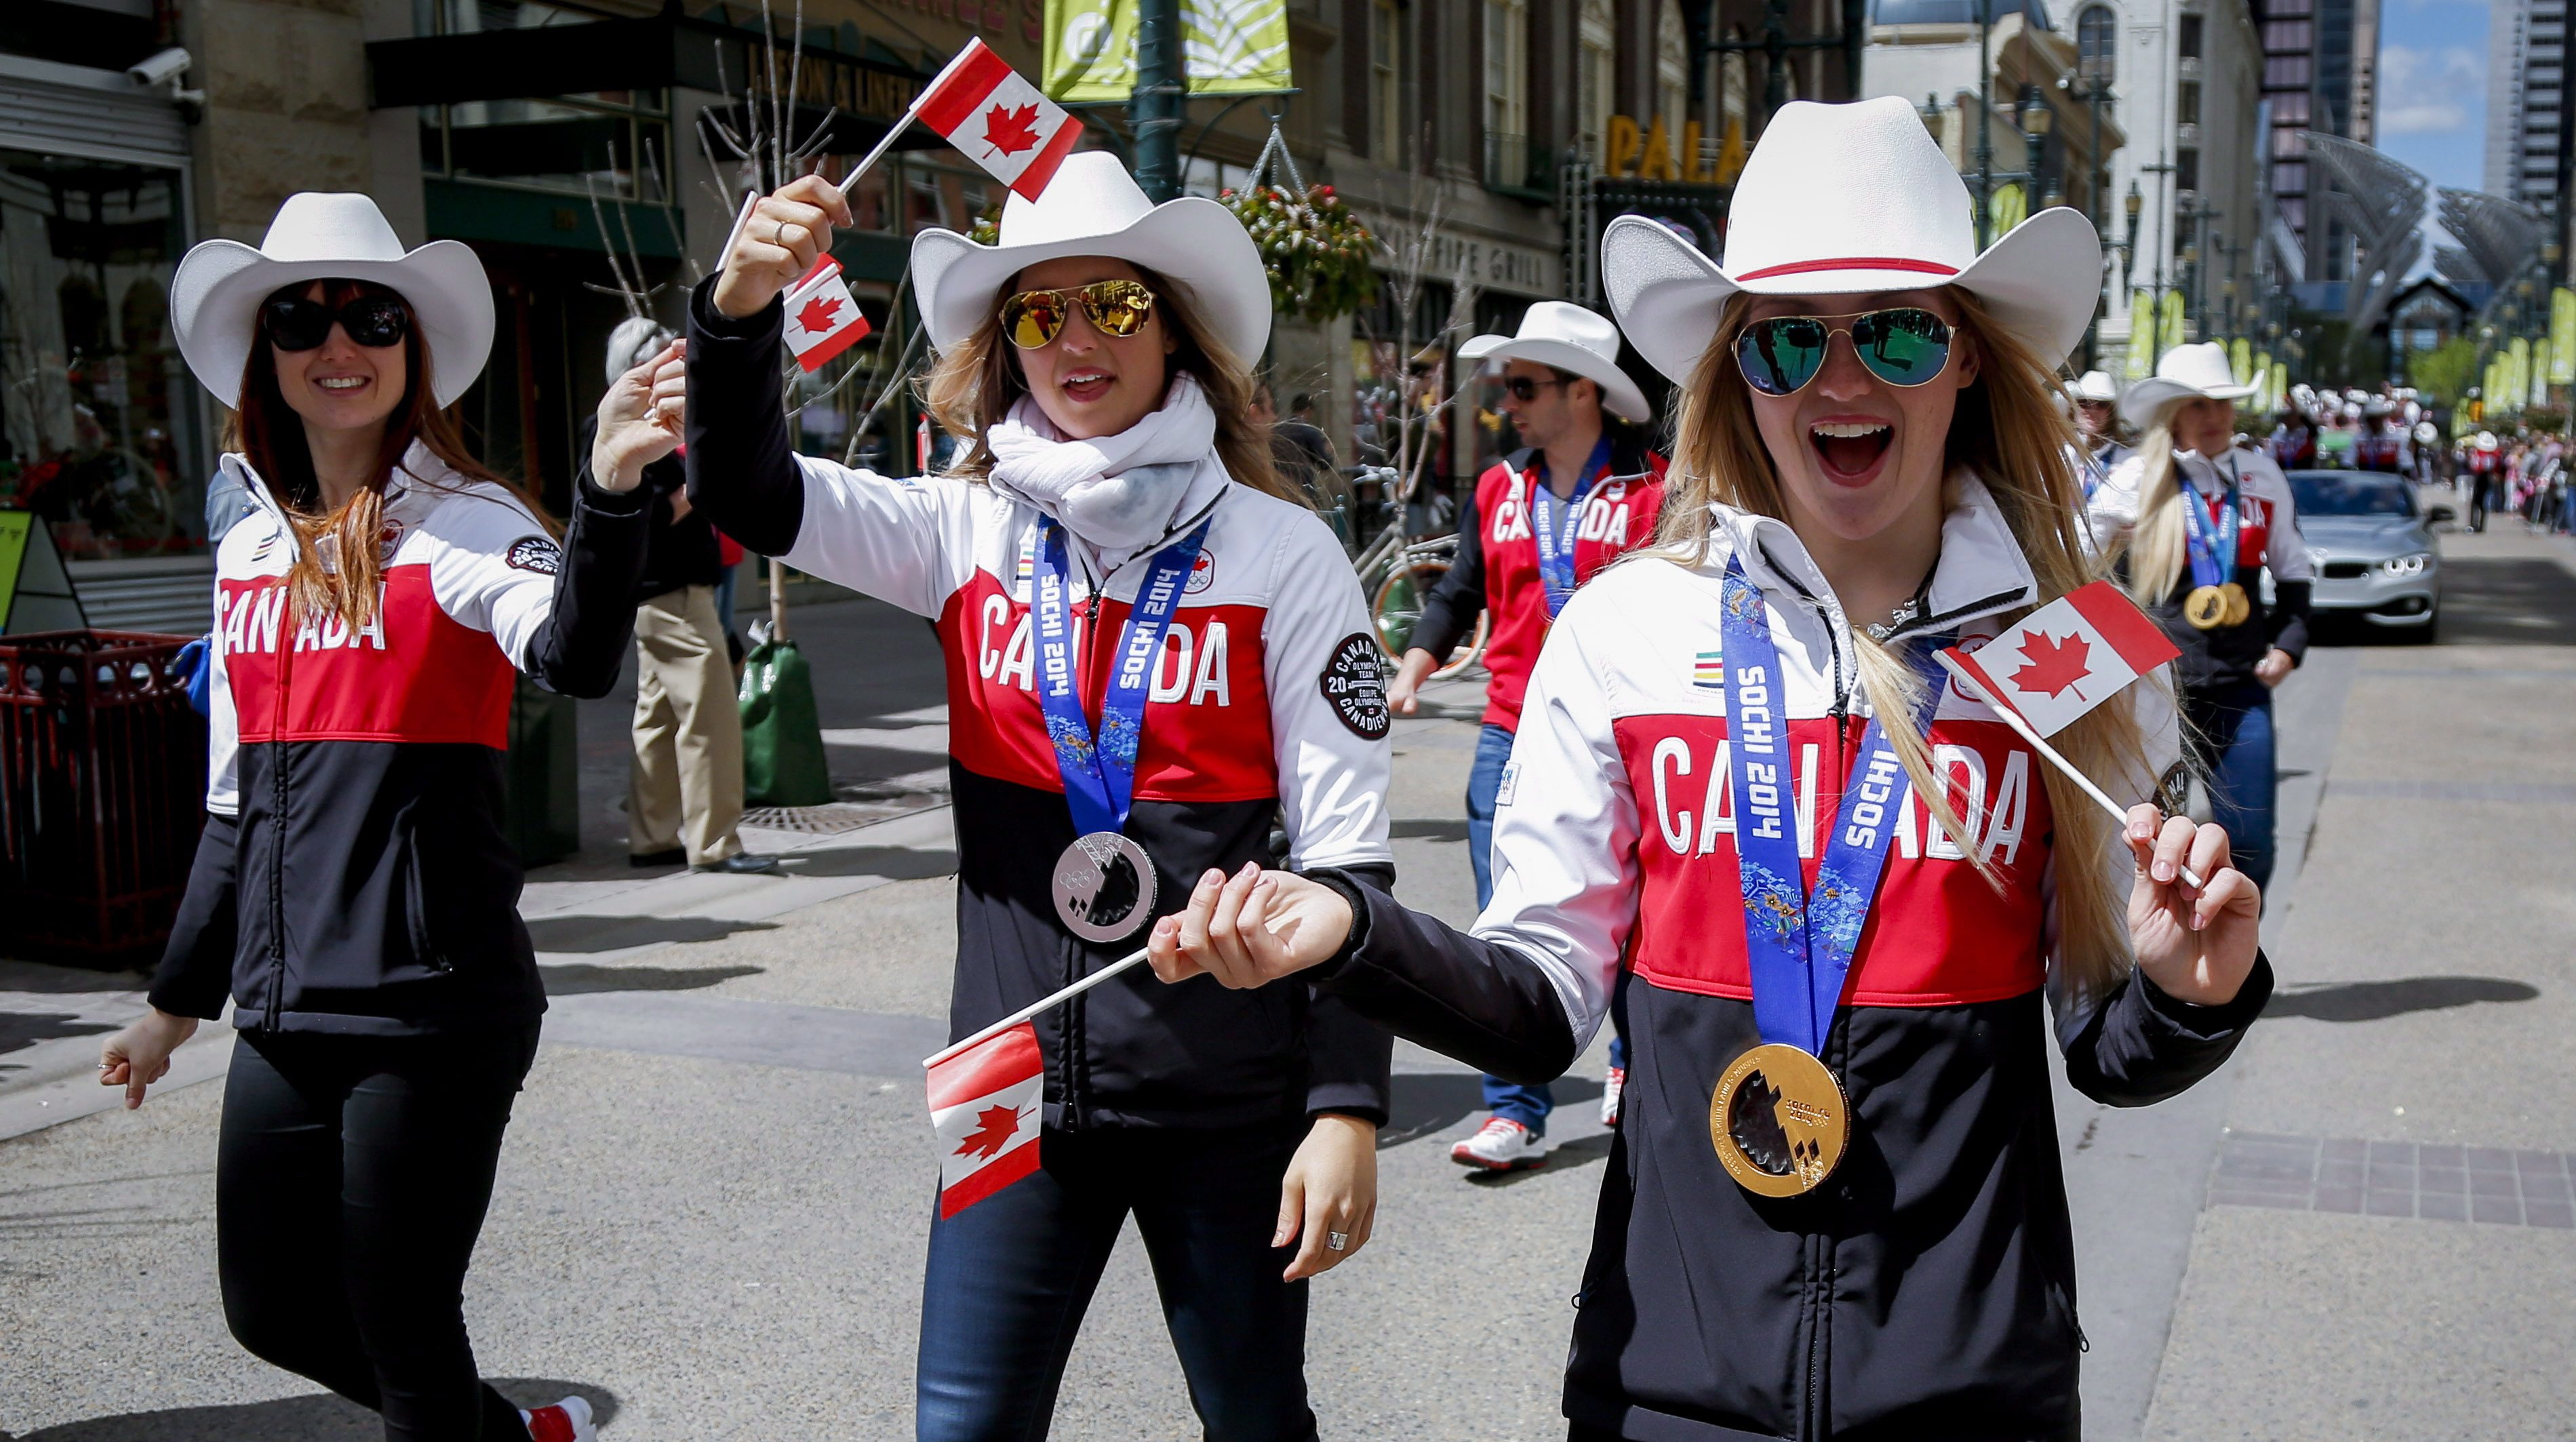 Sochi 2014 Olympians Justine Dufour-Lapointe, right, Chloe Dufour-Lapointe. centre, and Maxime Dufour-Lapointe, take part in a Parade of Champions in Calgary, Alta., Friday, June 6, 2014.